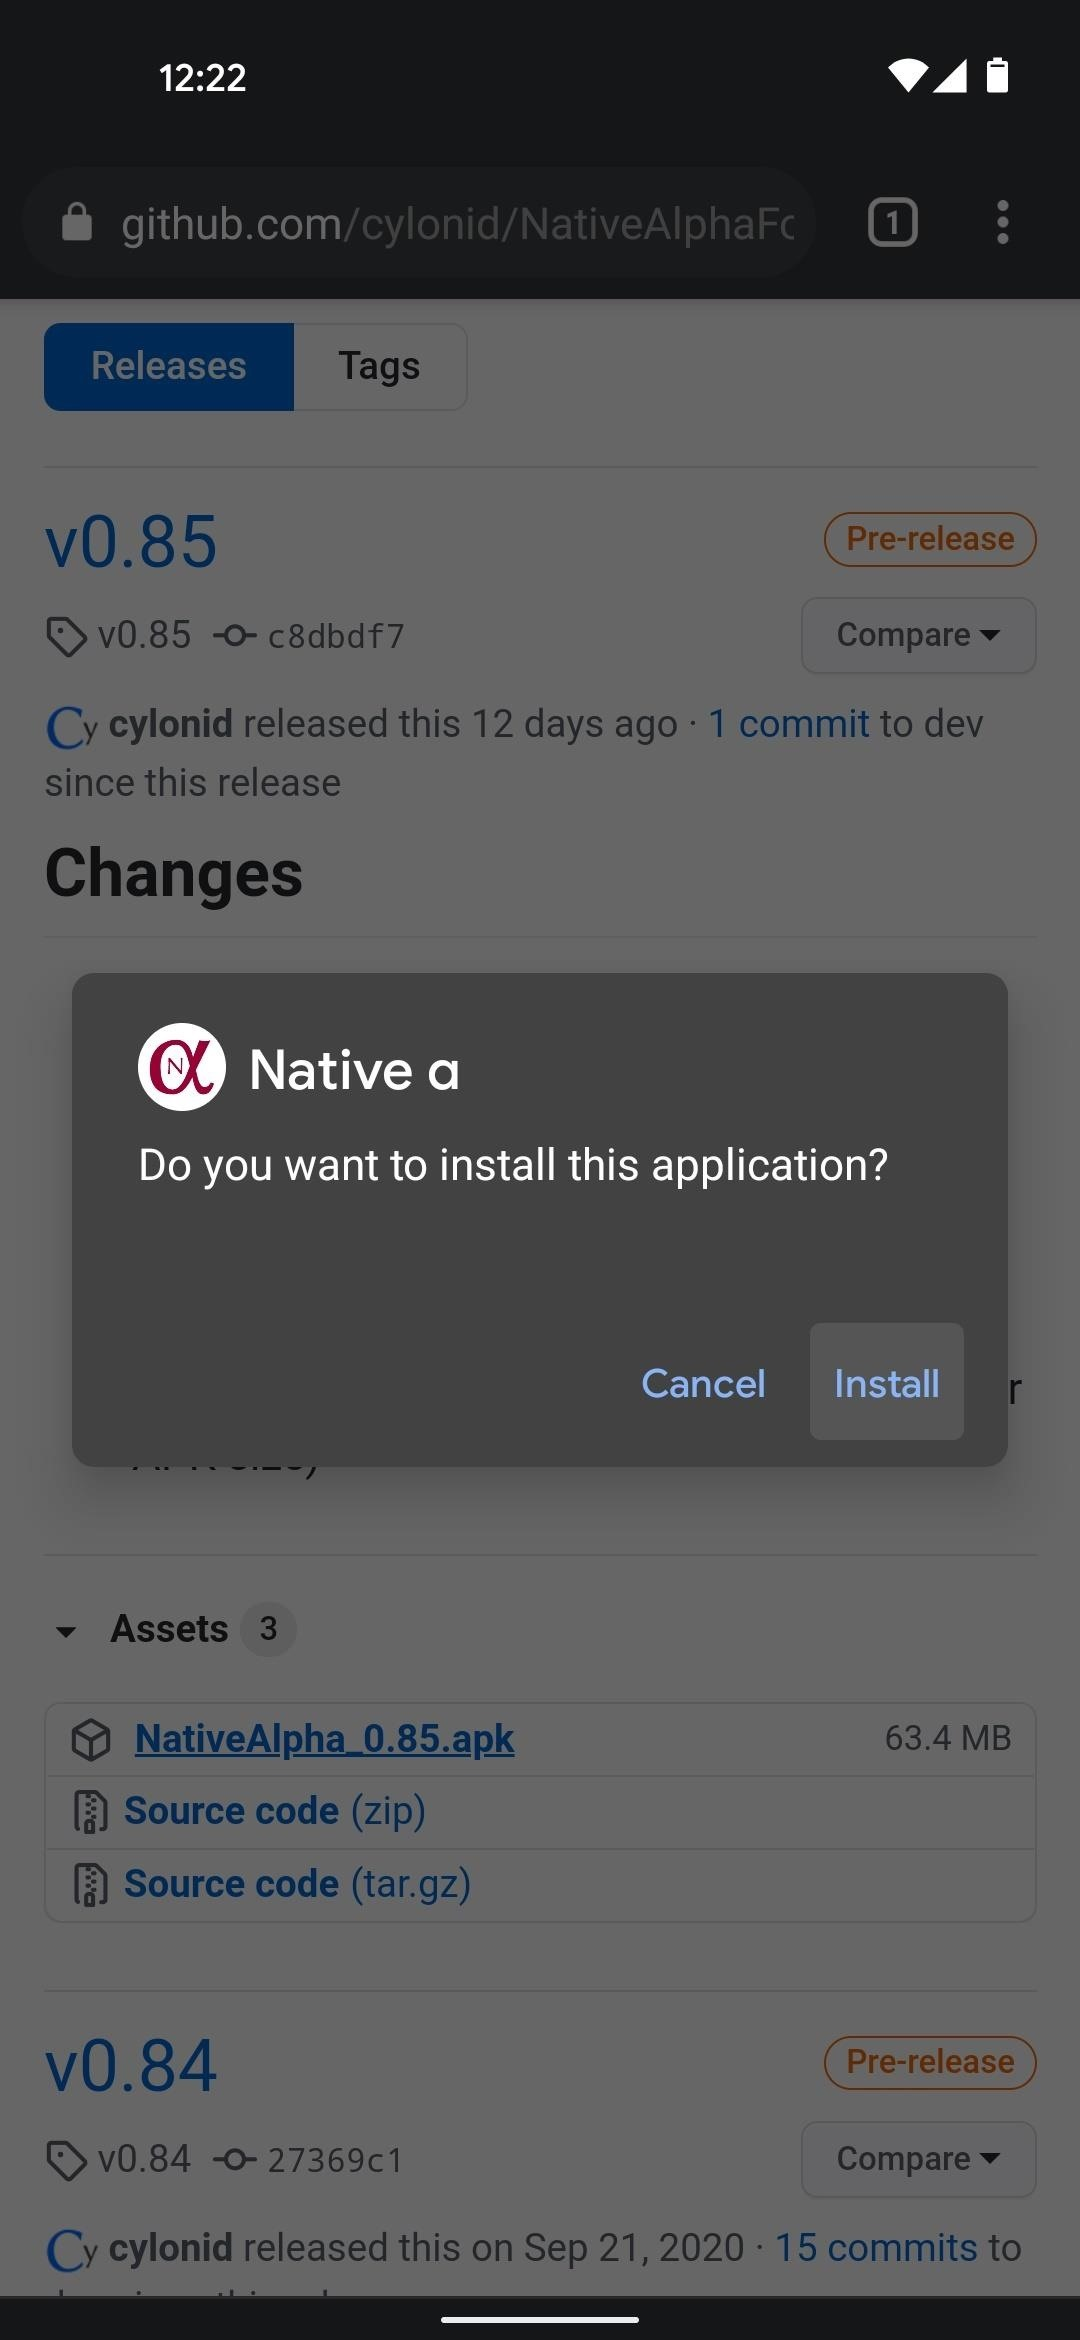 How to Turn Any Website into a Full-Screen Android App with Ad Blocking, Dark Mode & More